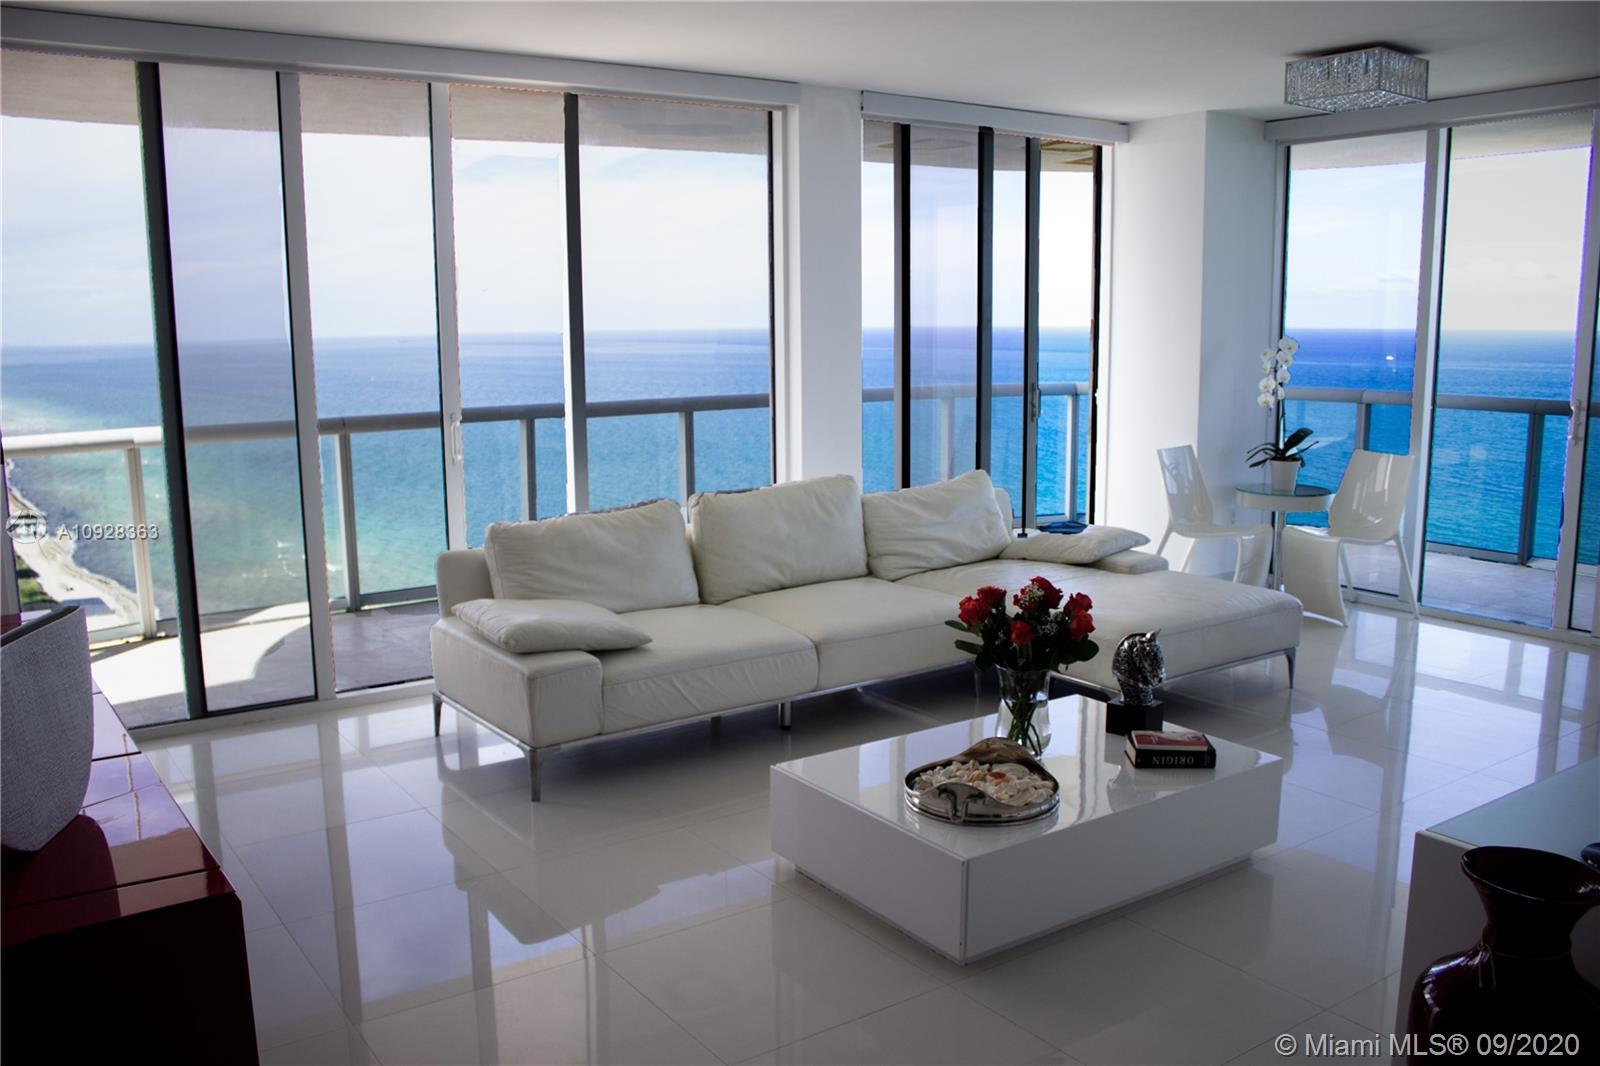 Incredible breath taking views from this Gorgeous modern home. 3 full bedrooms each with their own e